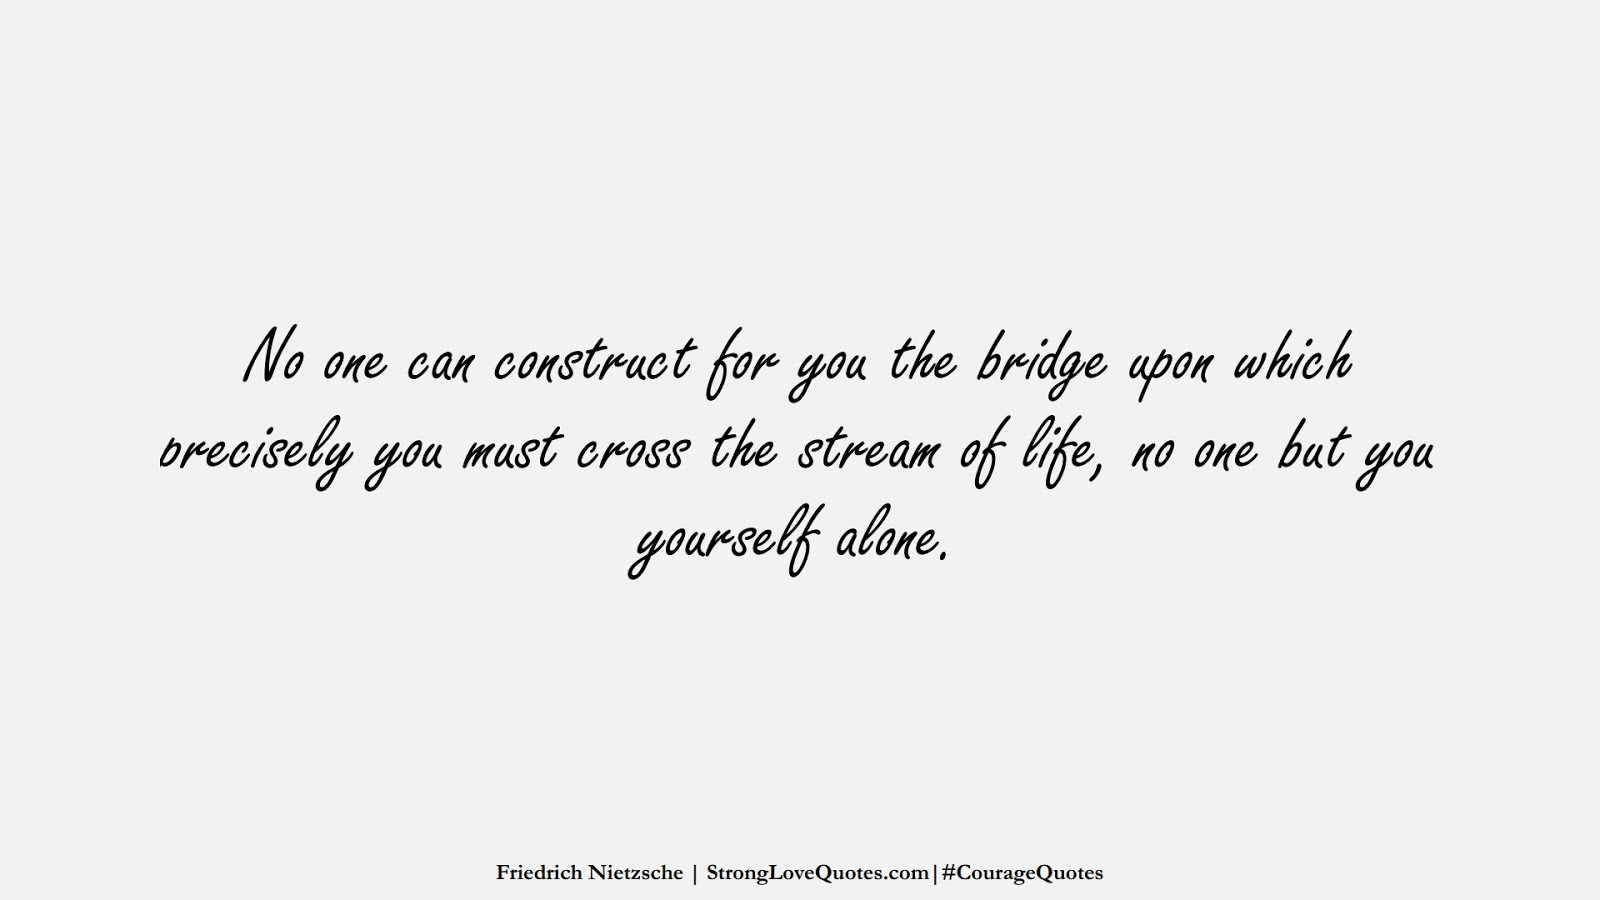 No one can construct for you the bridge upon which precisely you must cross the stream of life, no one but you yourself alone. (Friedrich Nietzsche);  #CourageQuotes